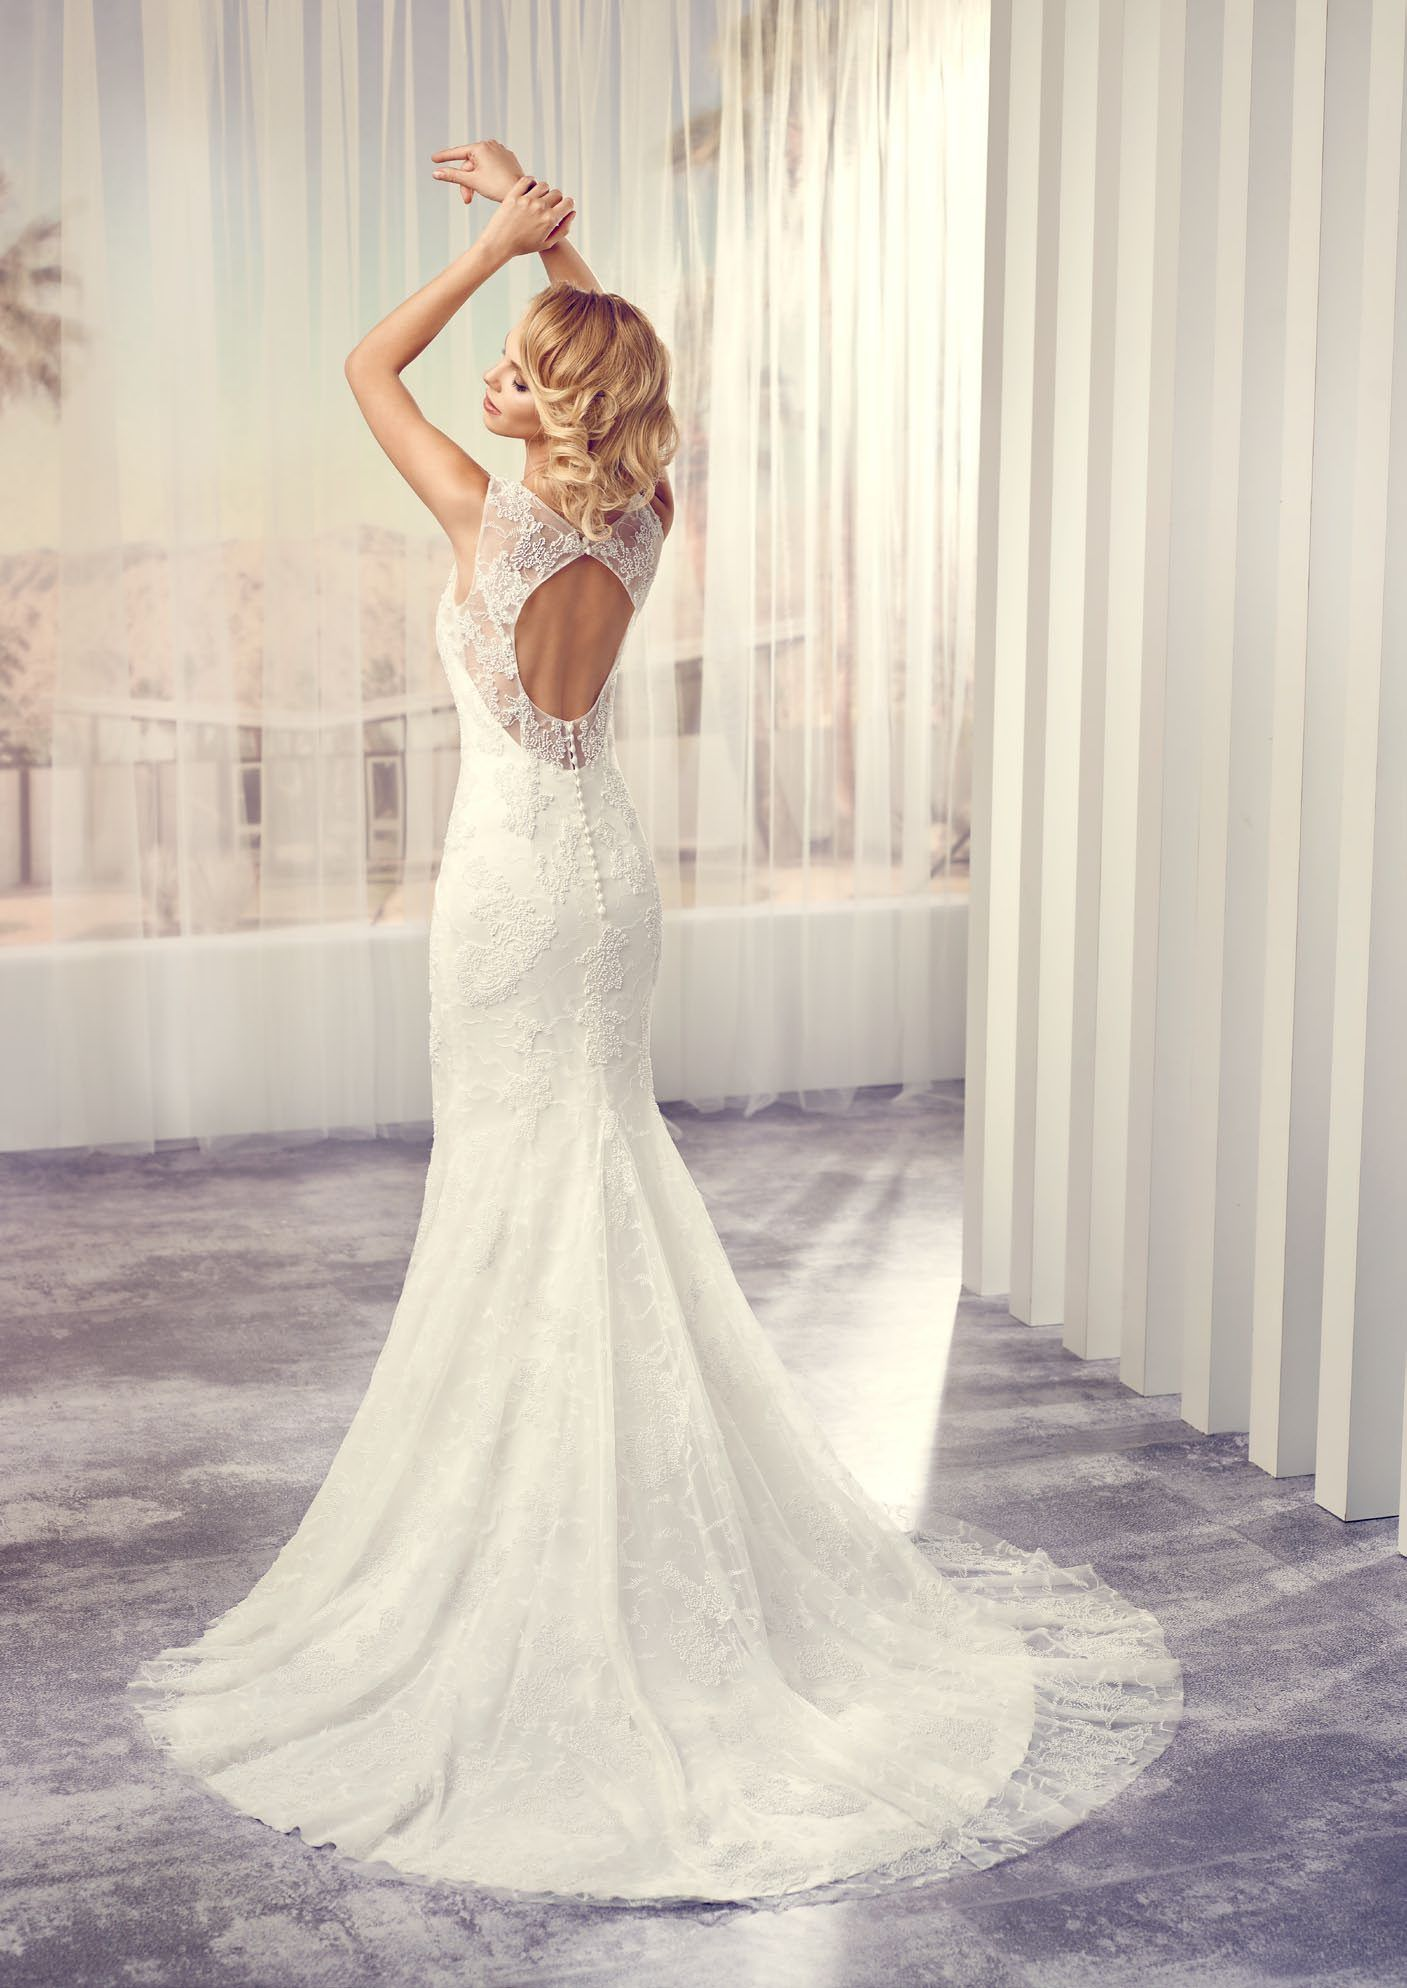 Le Papillon By Modeca Style Secret Www Modeca Com Wedding Dresses Stylish Wedding Dresses Dresses